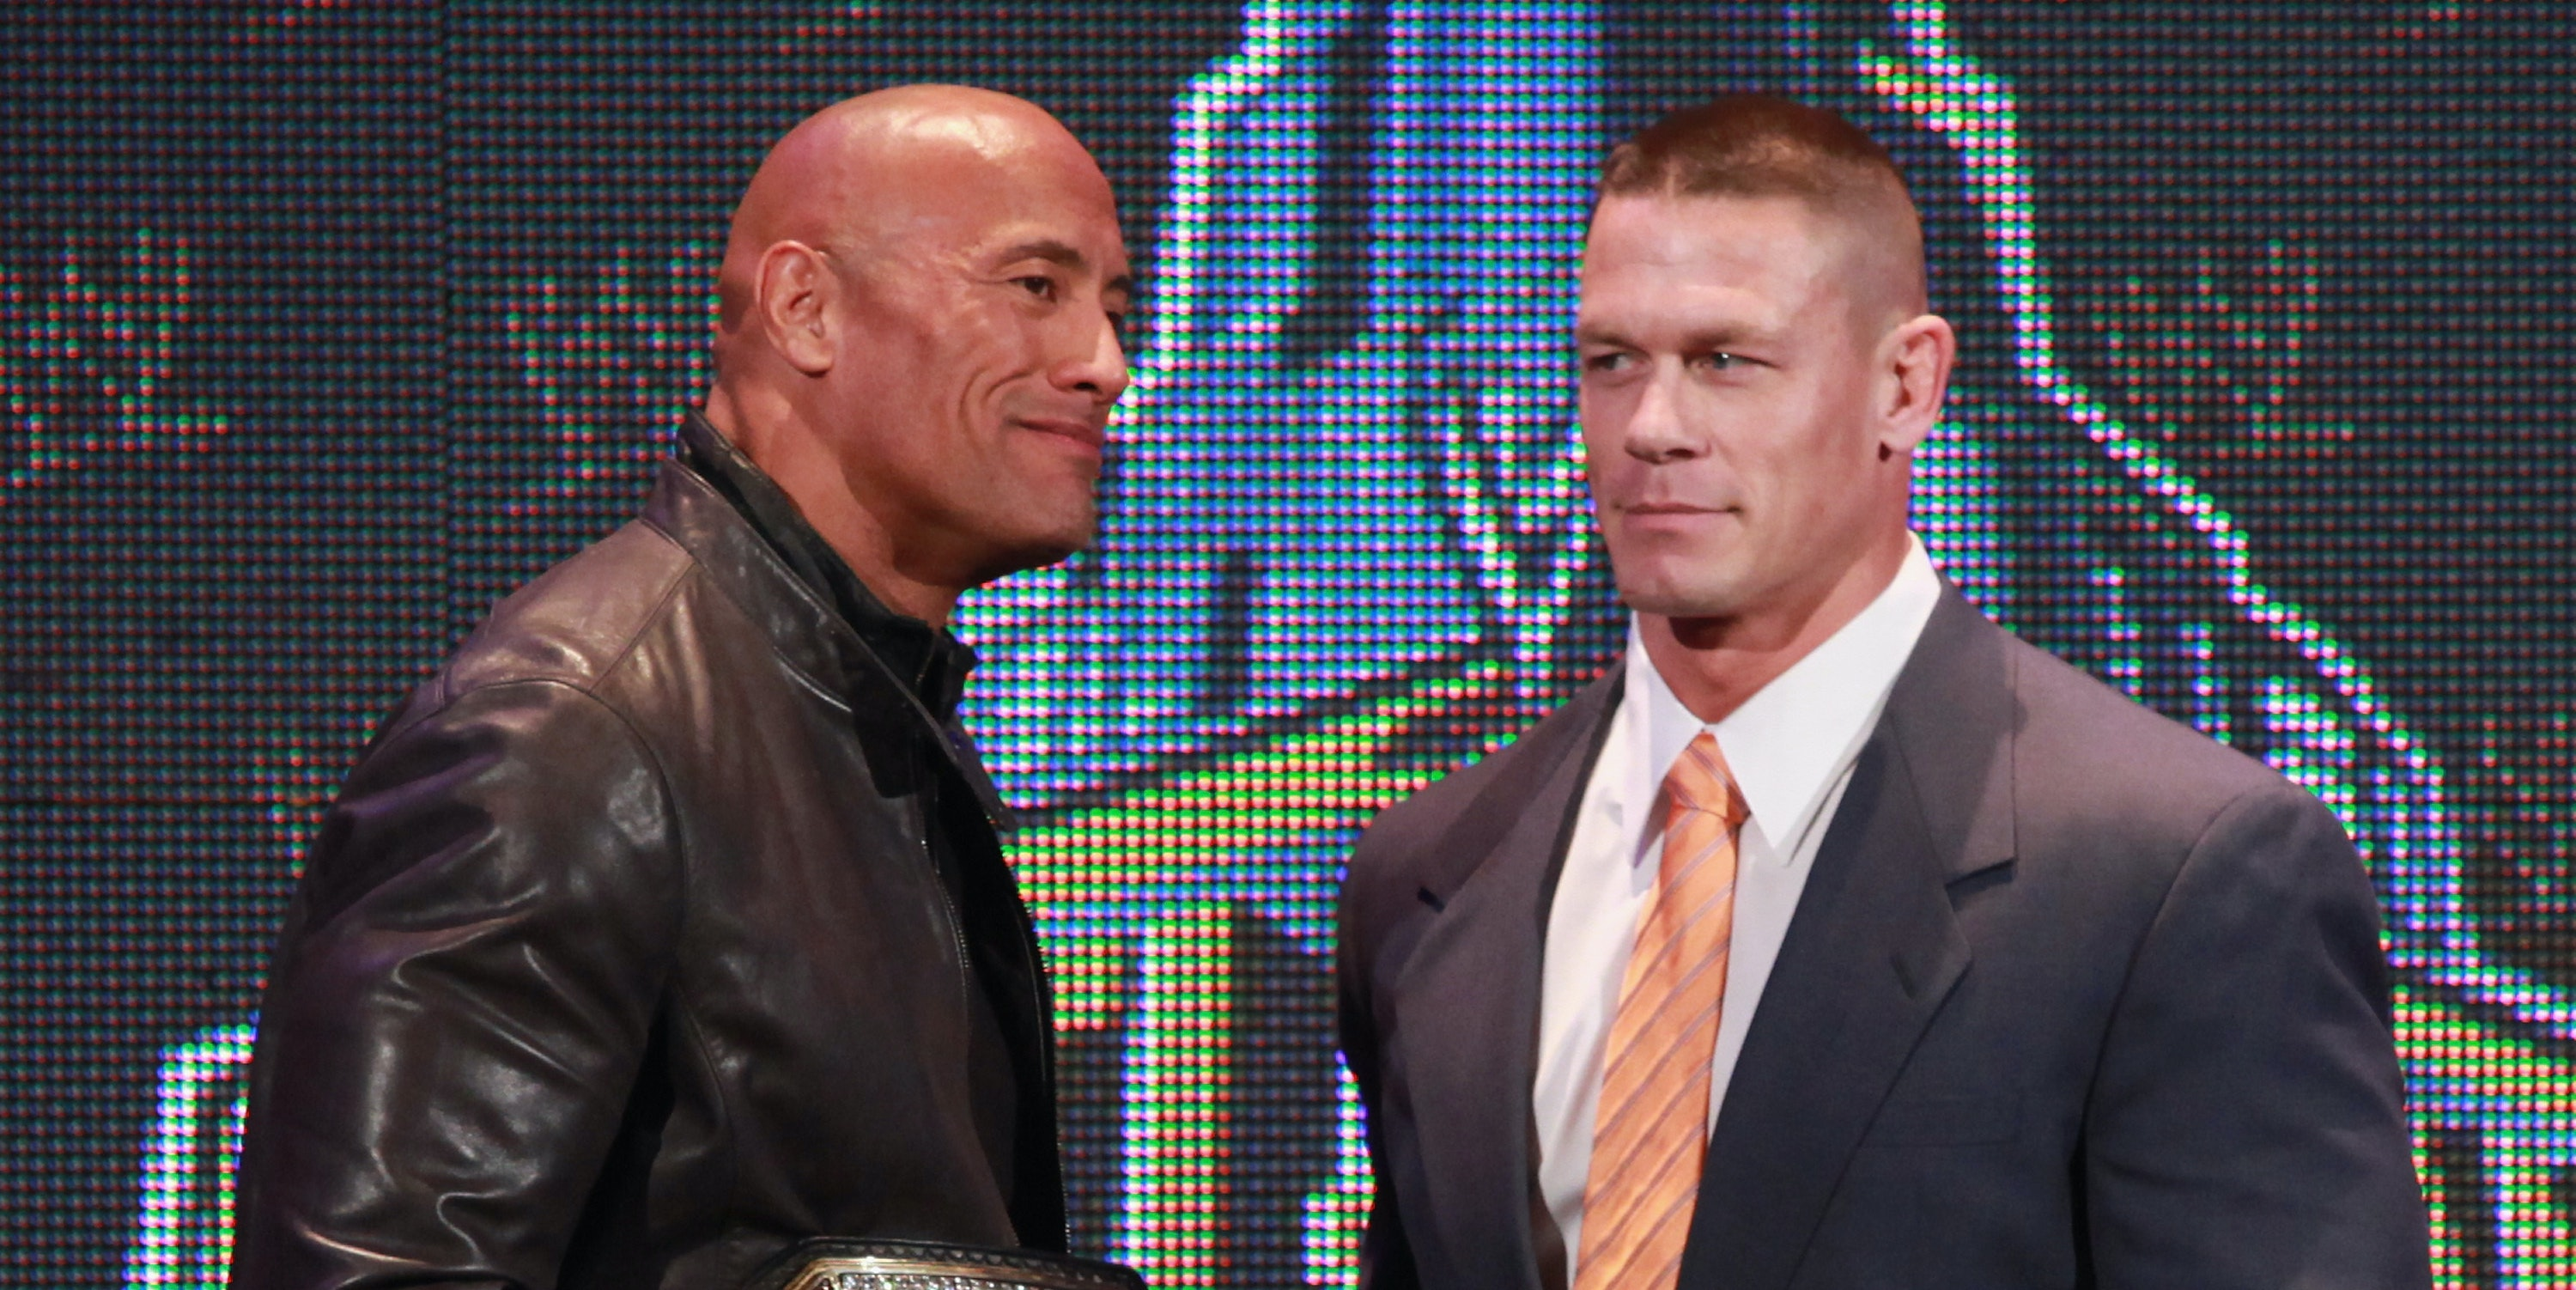 Dwayne Johnson and John Cena at the WrestleMania 29 press conference from April 4, 2013 in New York City.  (Photo by Taylor Hill/Getty Images)